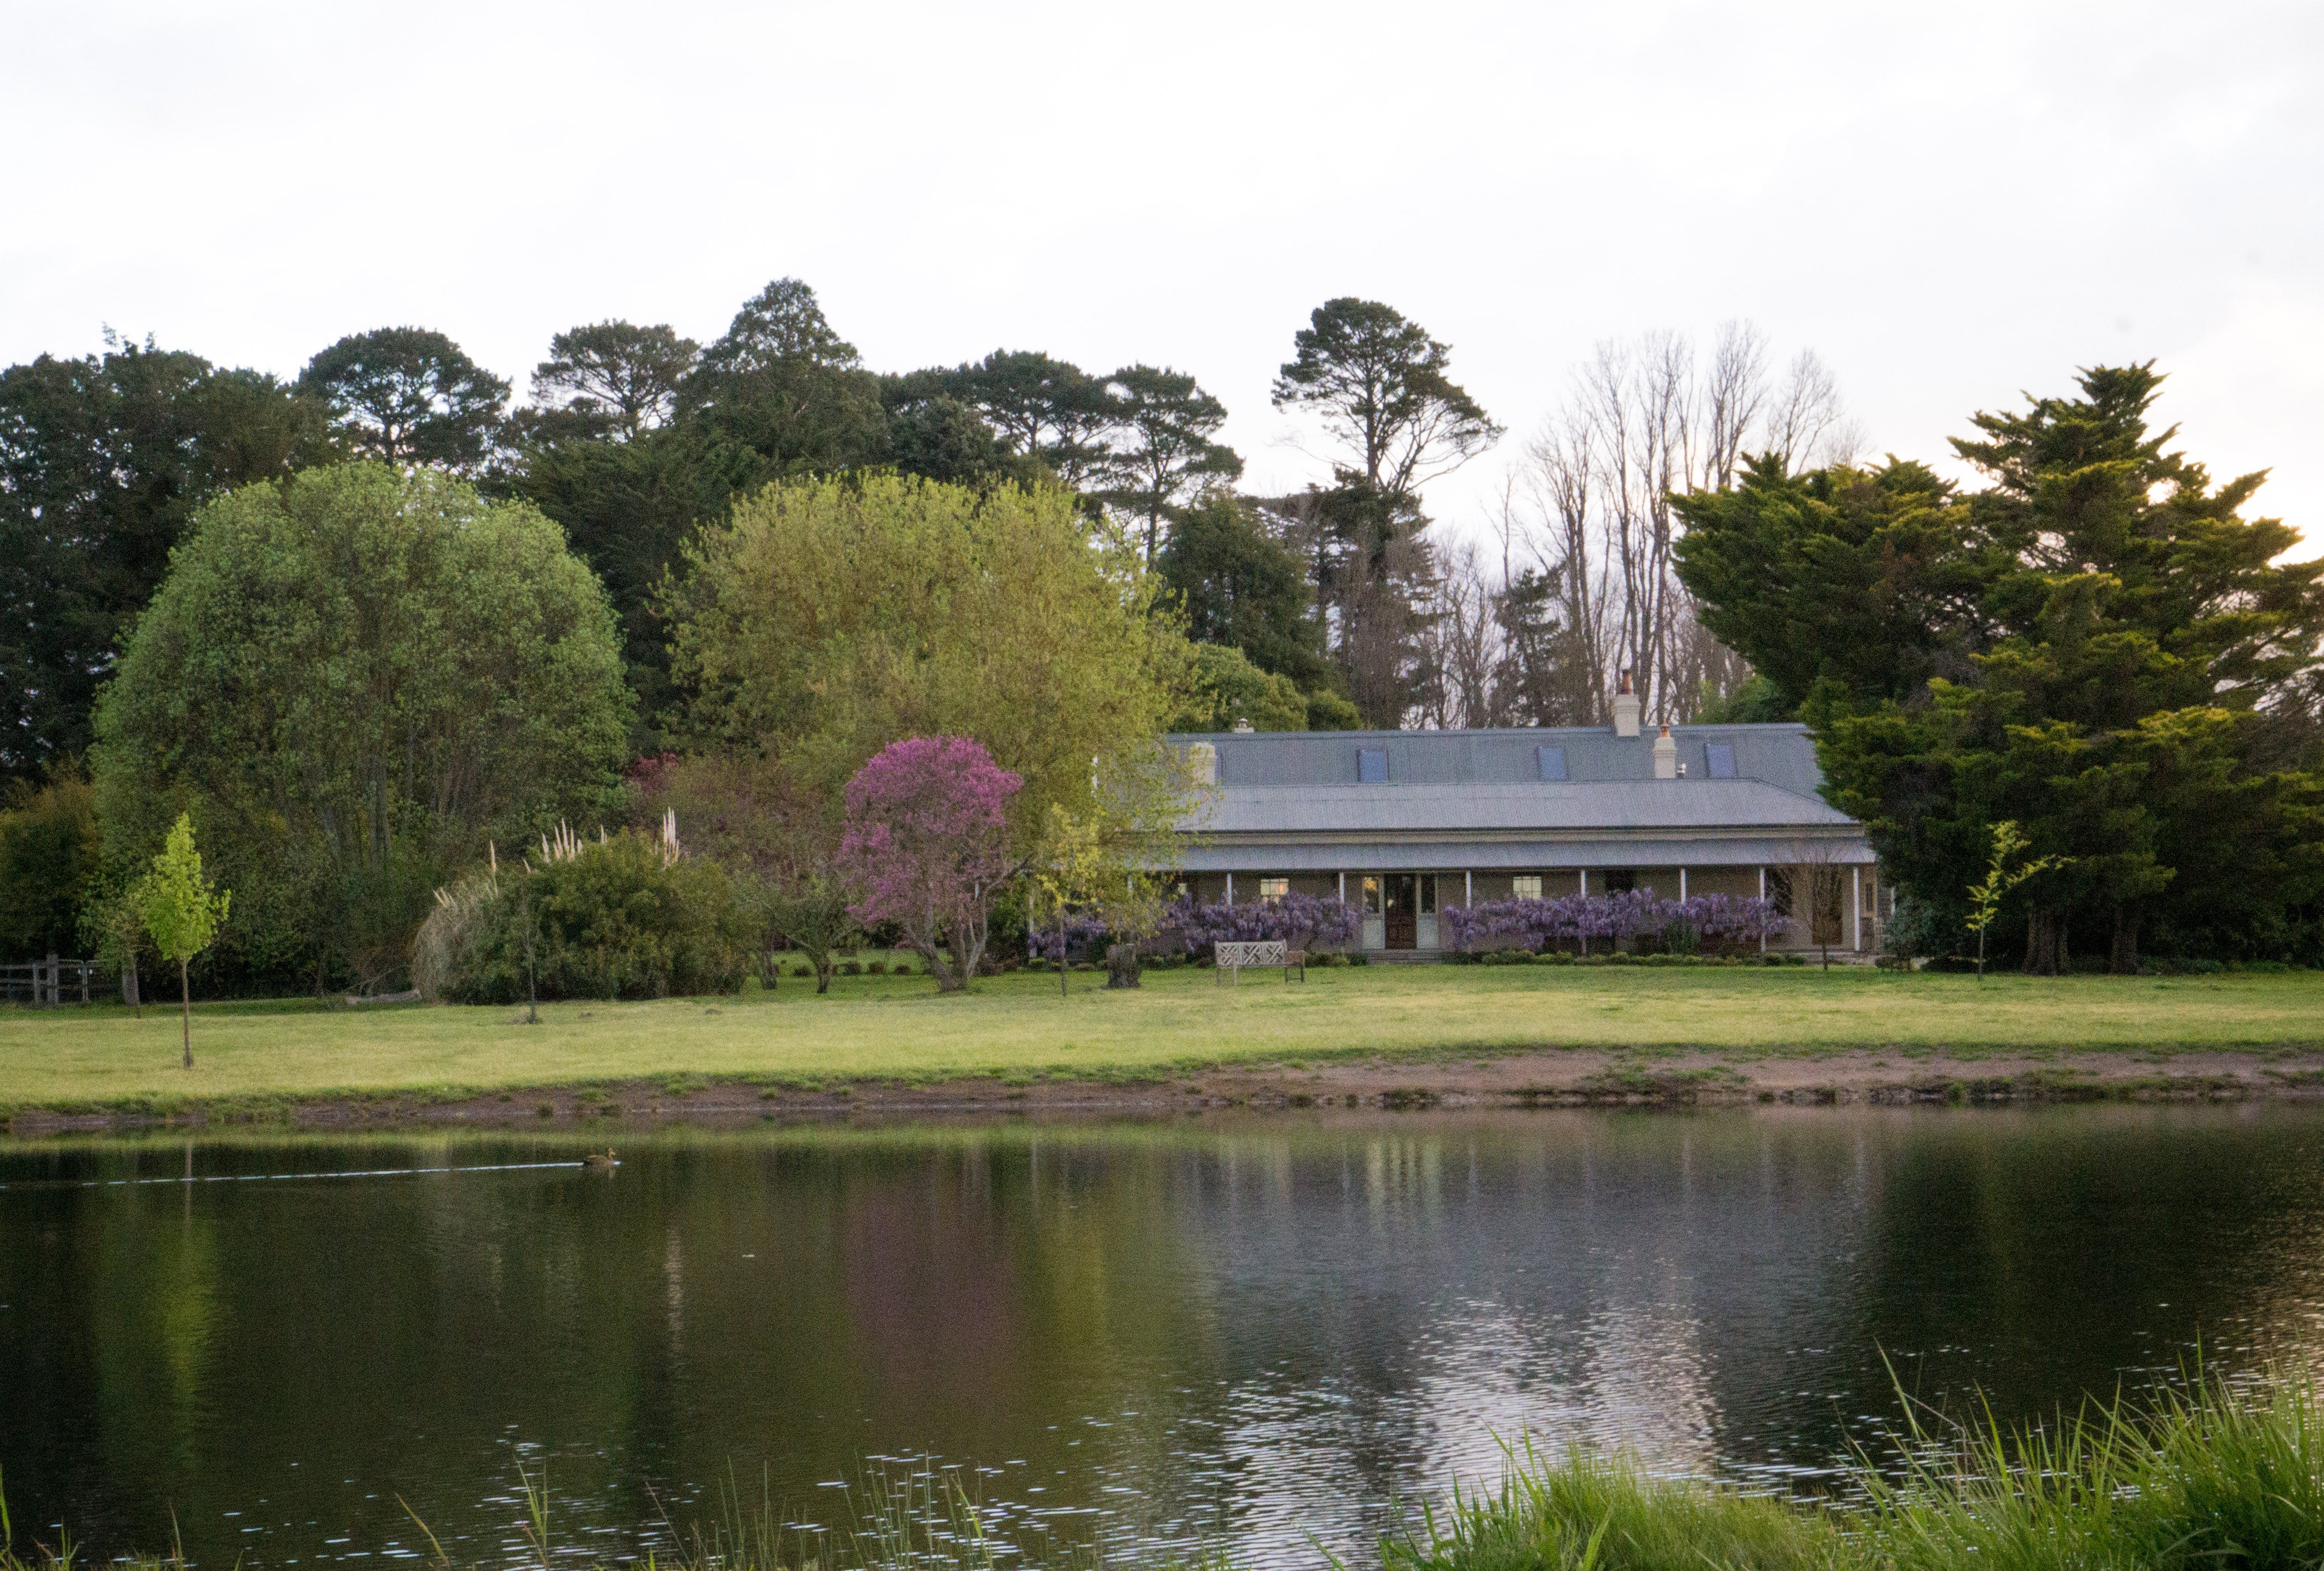 The Farmhouse and garden, multi-use area at Mill Pond Farm, image 4